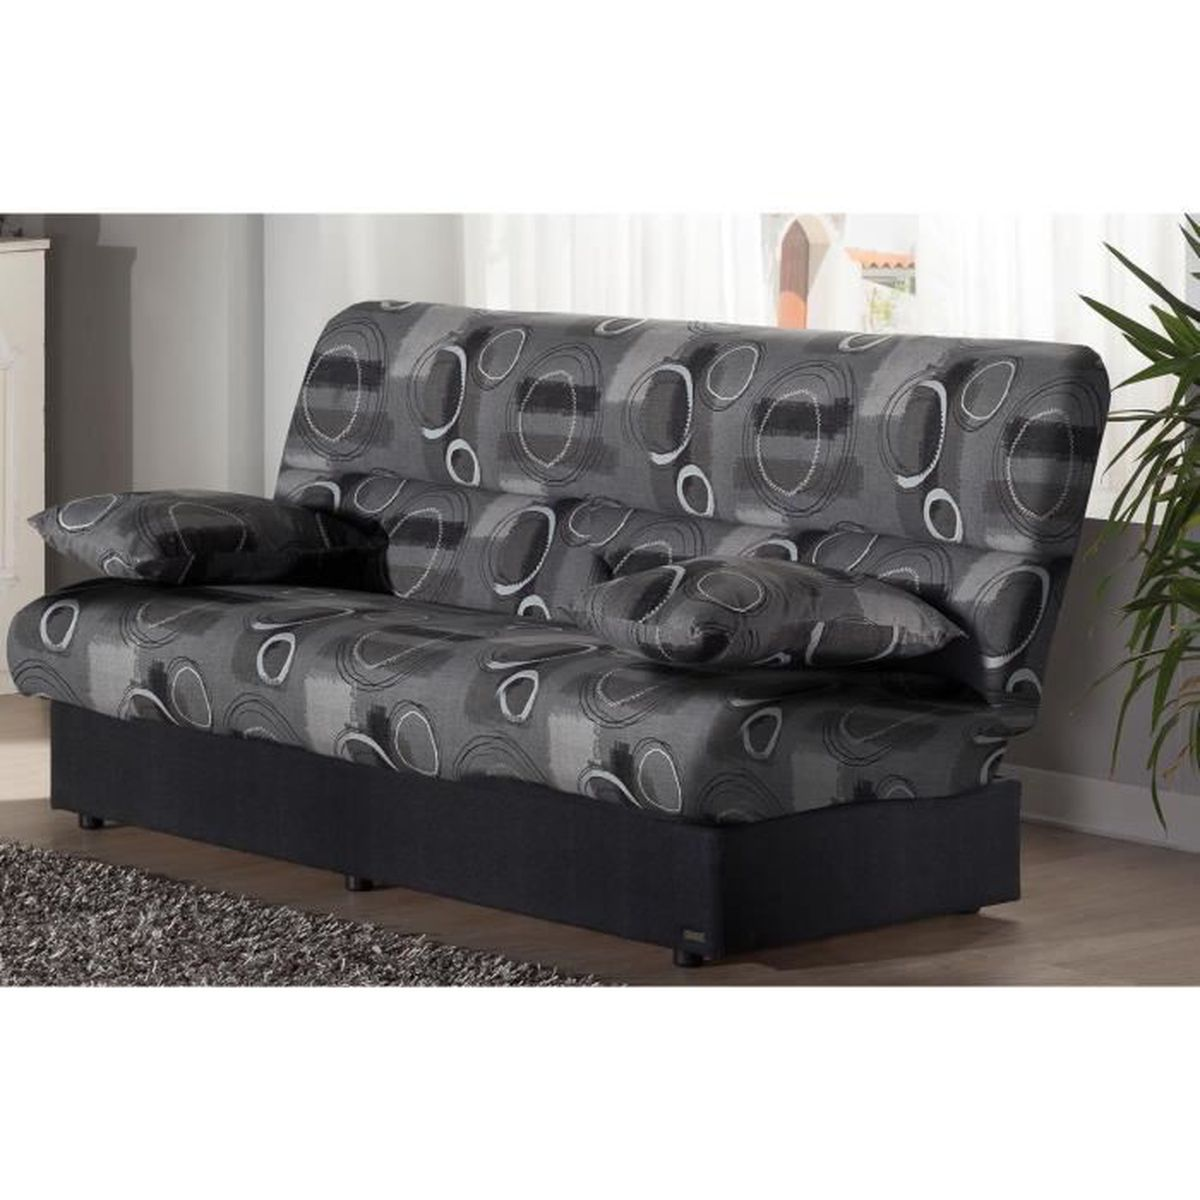 canape milan achat vente pas cher. Black Bedroom Furniture Sets. Home Design Ideas